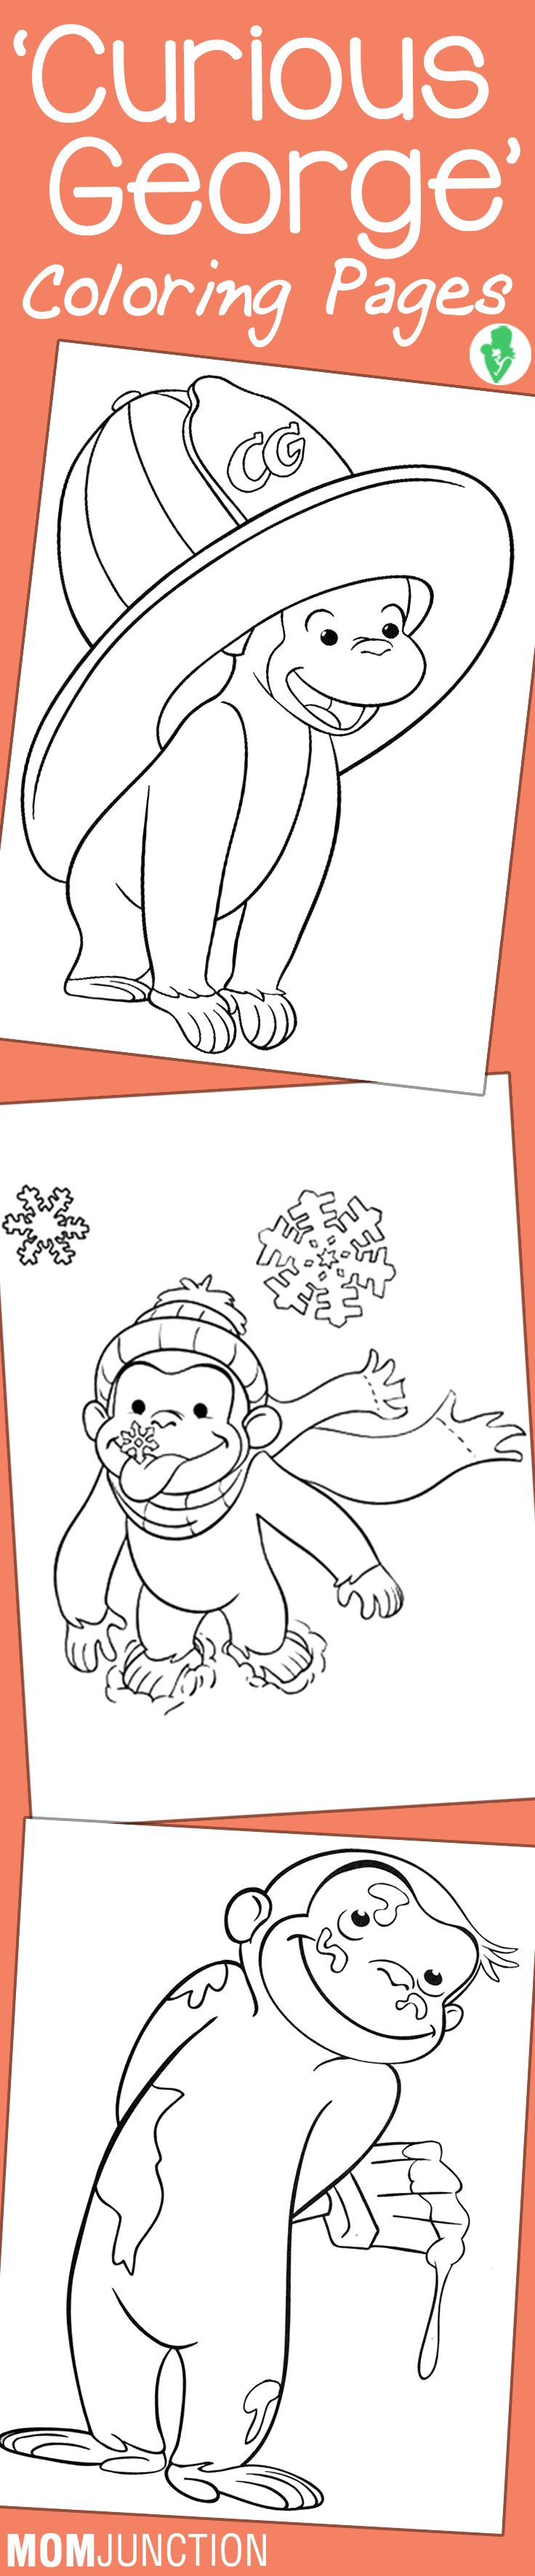 15 Best \'Curious George\' Coloring Pages For Your Little Ones | Jorge ...